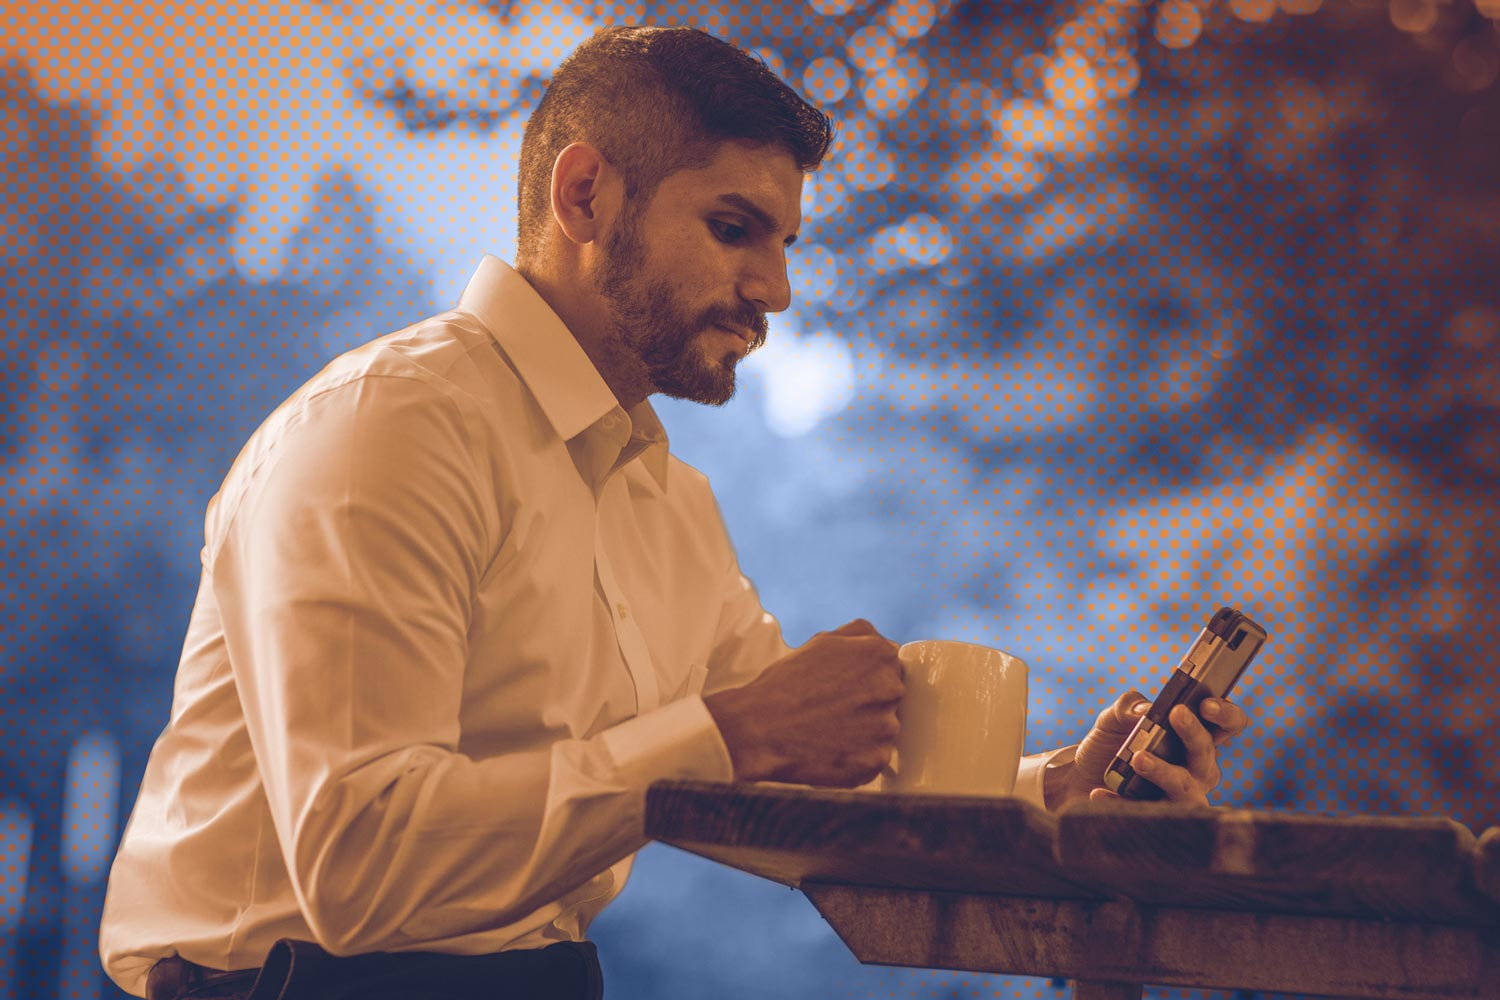 That smartphone may give you handheld access to a world's worth of information, but it can damage human relationships, according to multiple UVA studies.